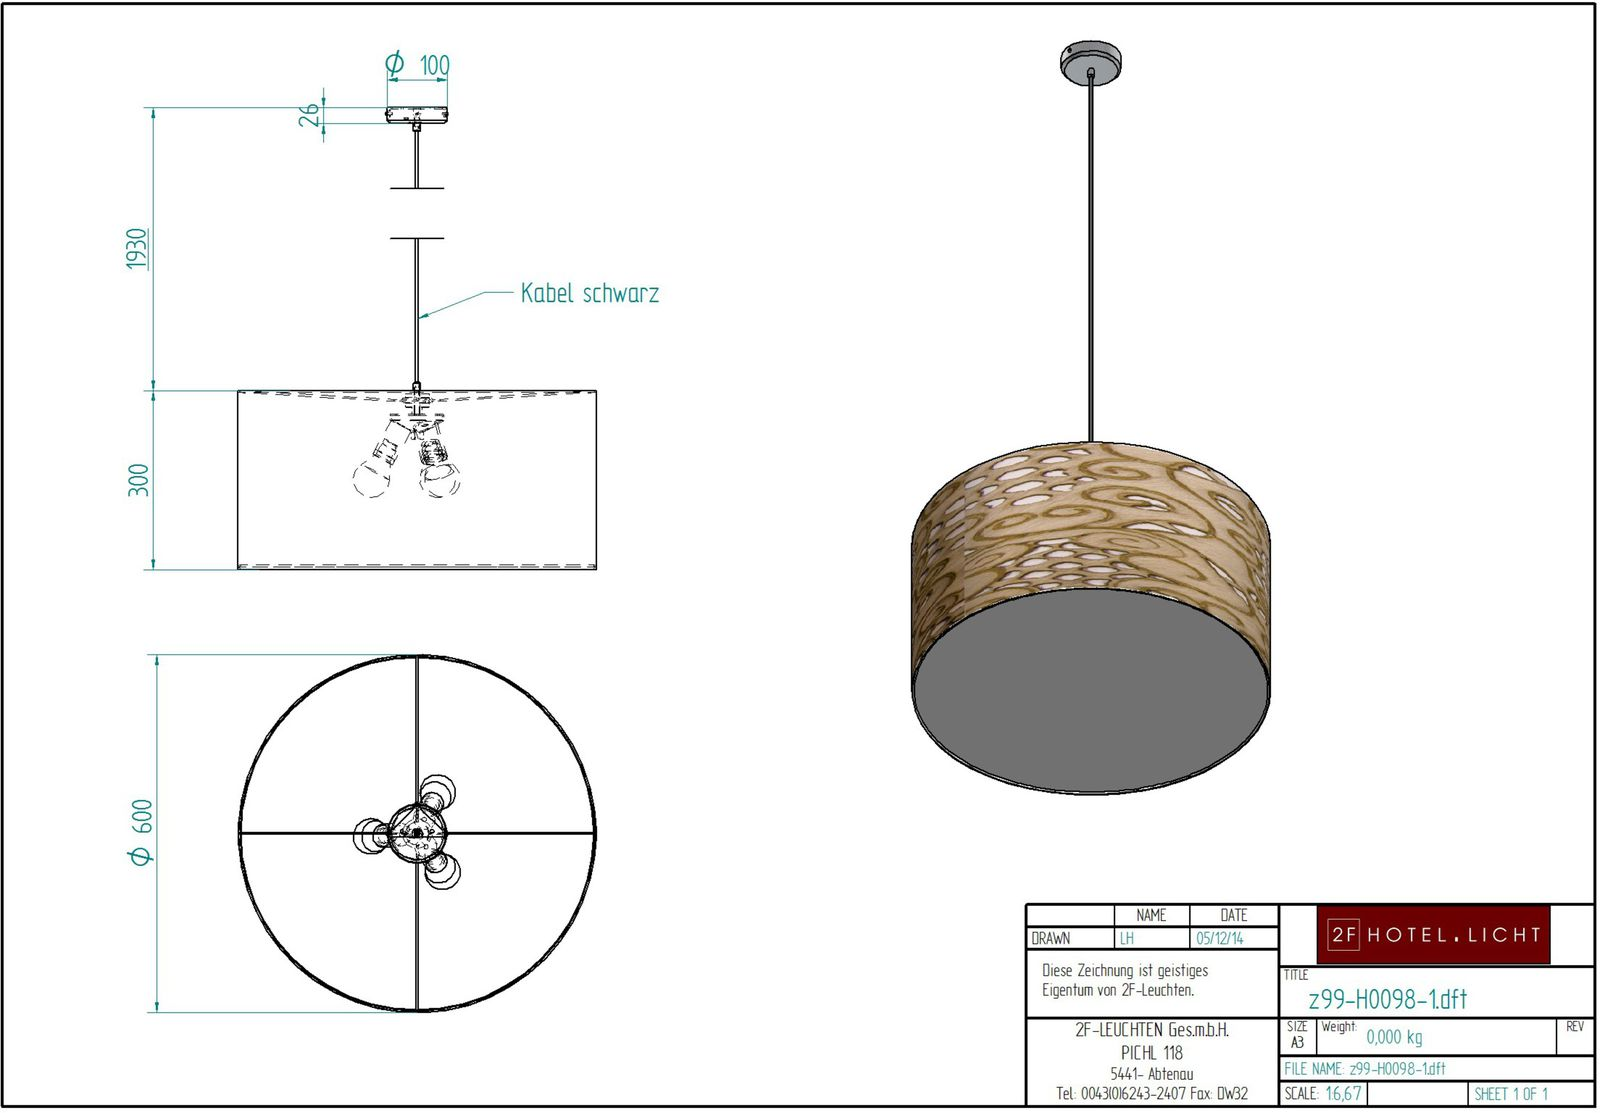 pendant lamp, height=2000mm, surface: brushed nickel, 3xE27, 42W energy saving bulb